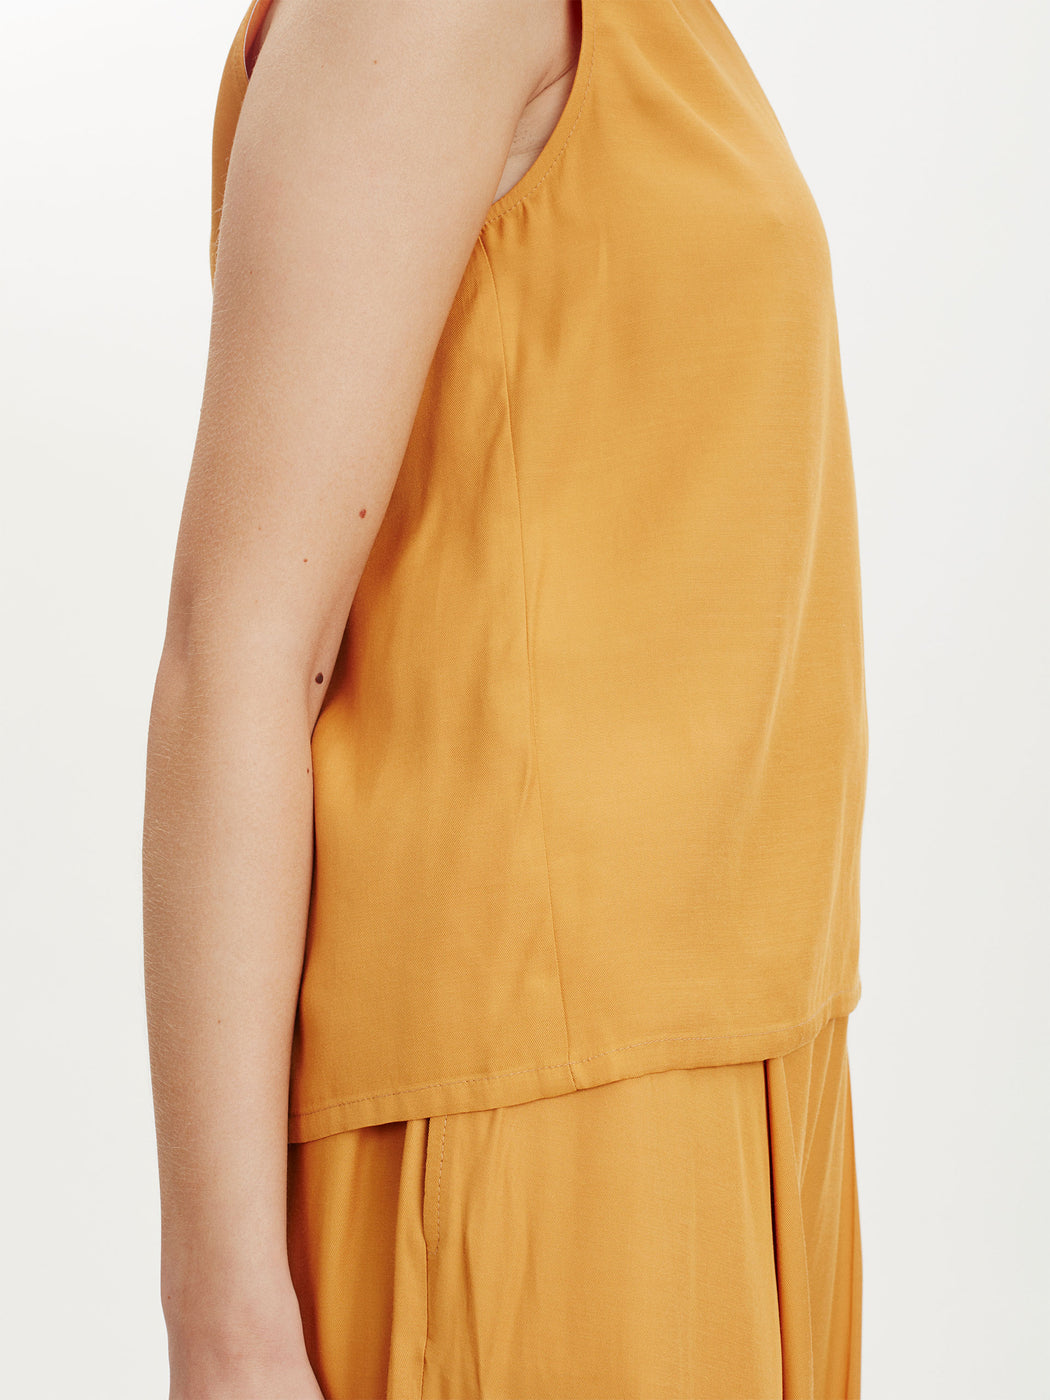 Spot Vest Top in Canary Yellow